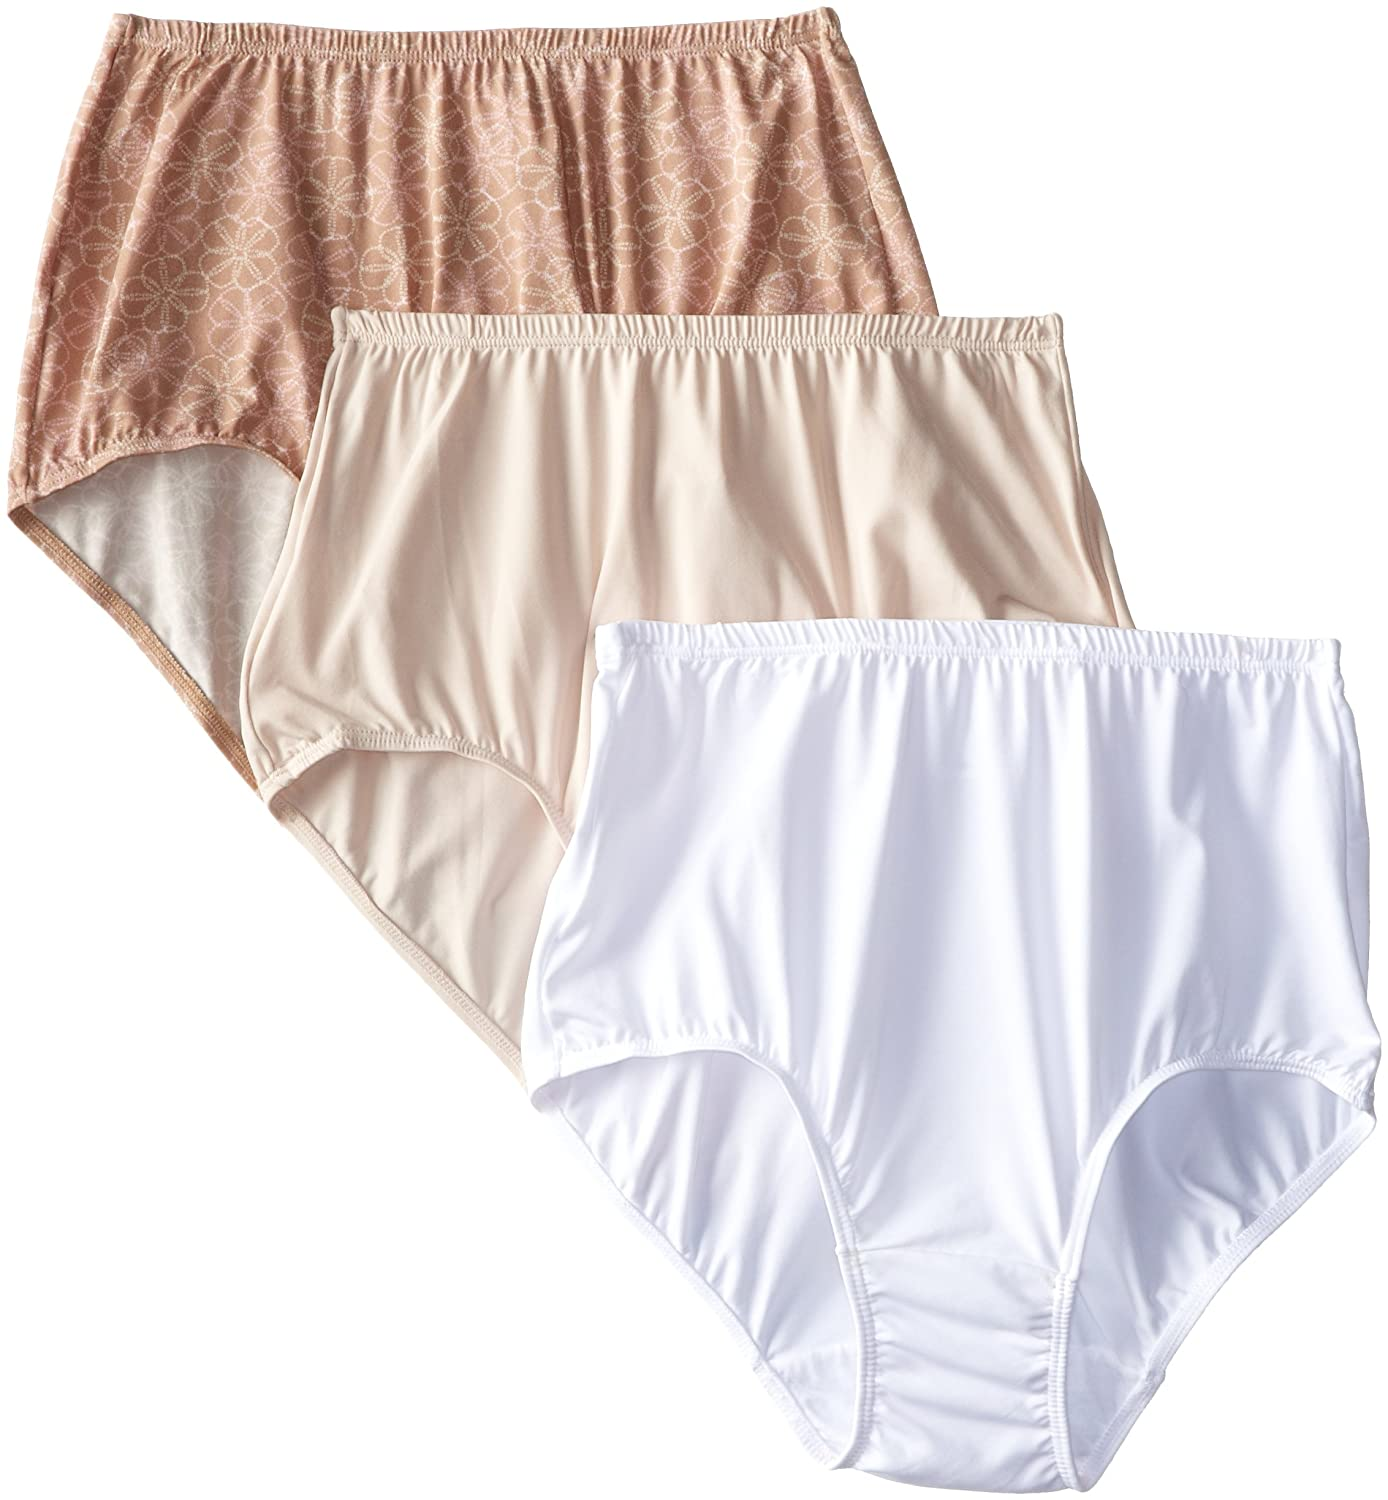 Olga Womens 3 Pack Without a Stitch Lace Brief Panty